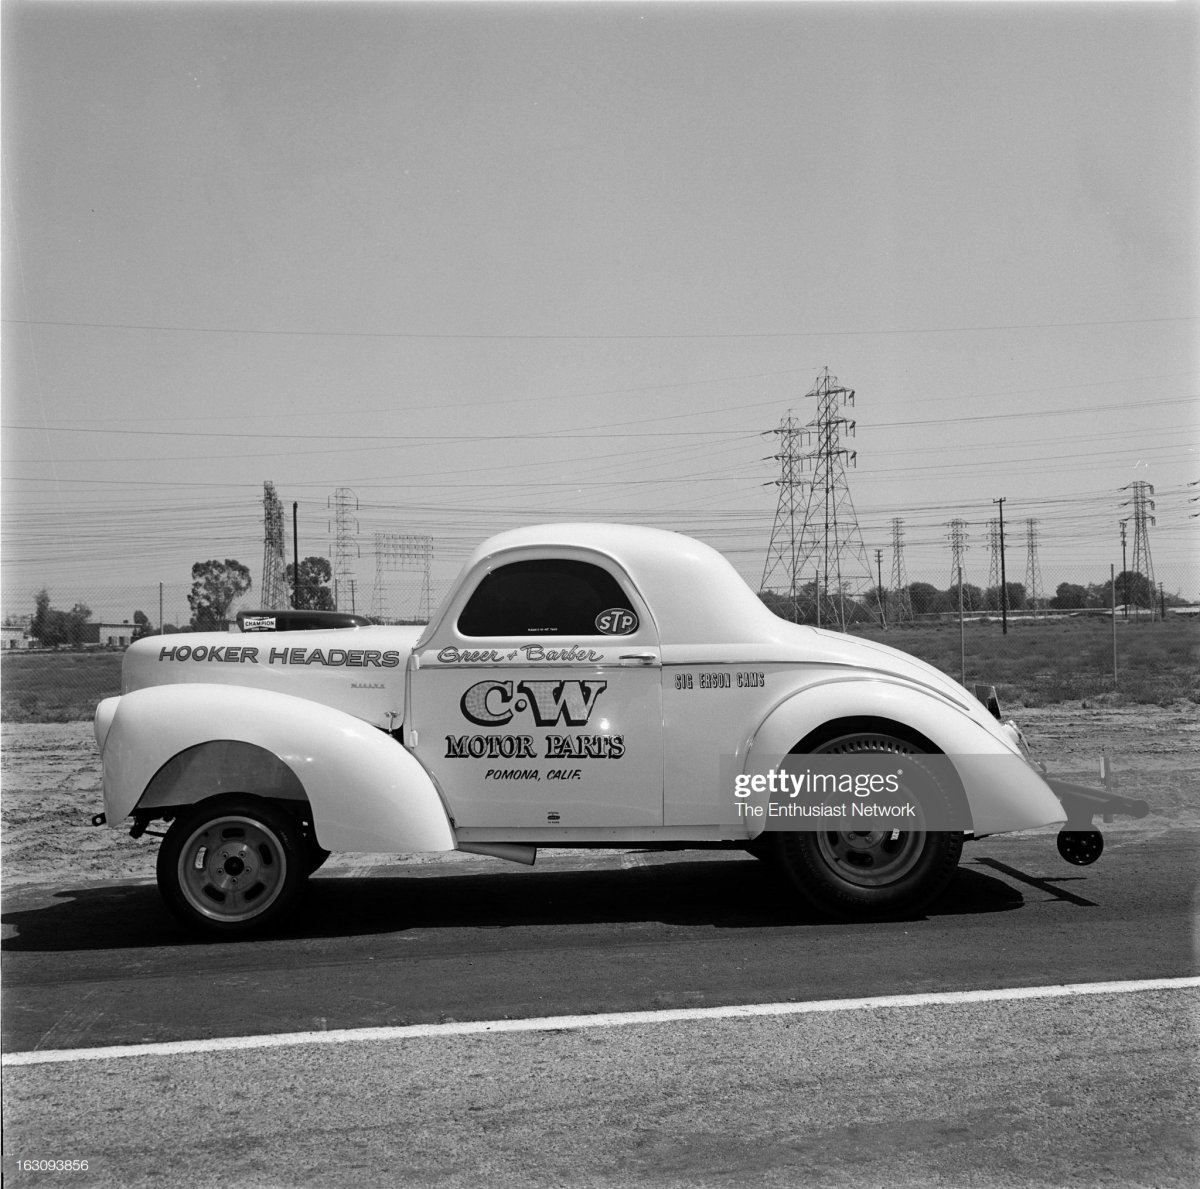 1965 AHRA Drag Races - Lions Drag Strip. Ed.jpg